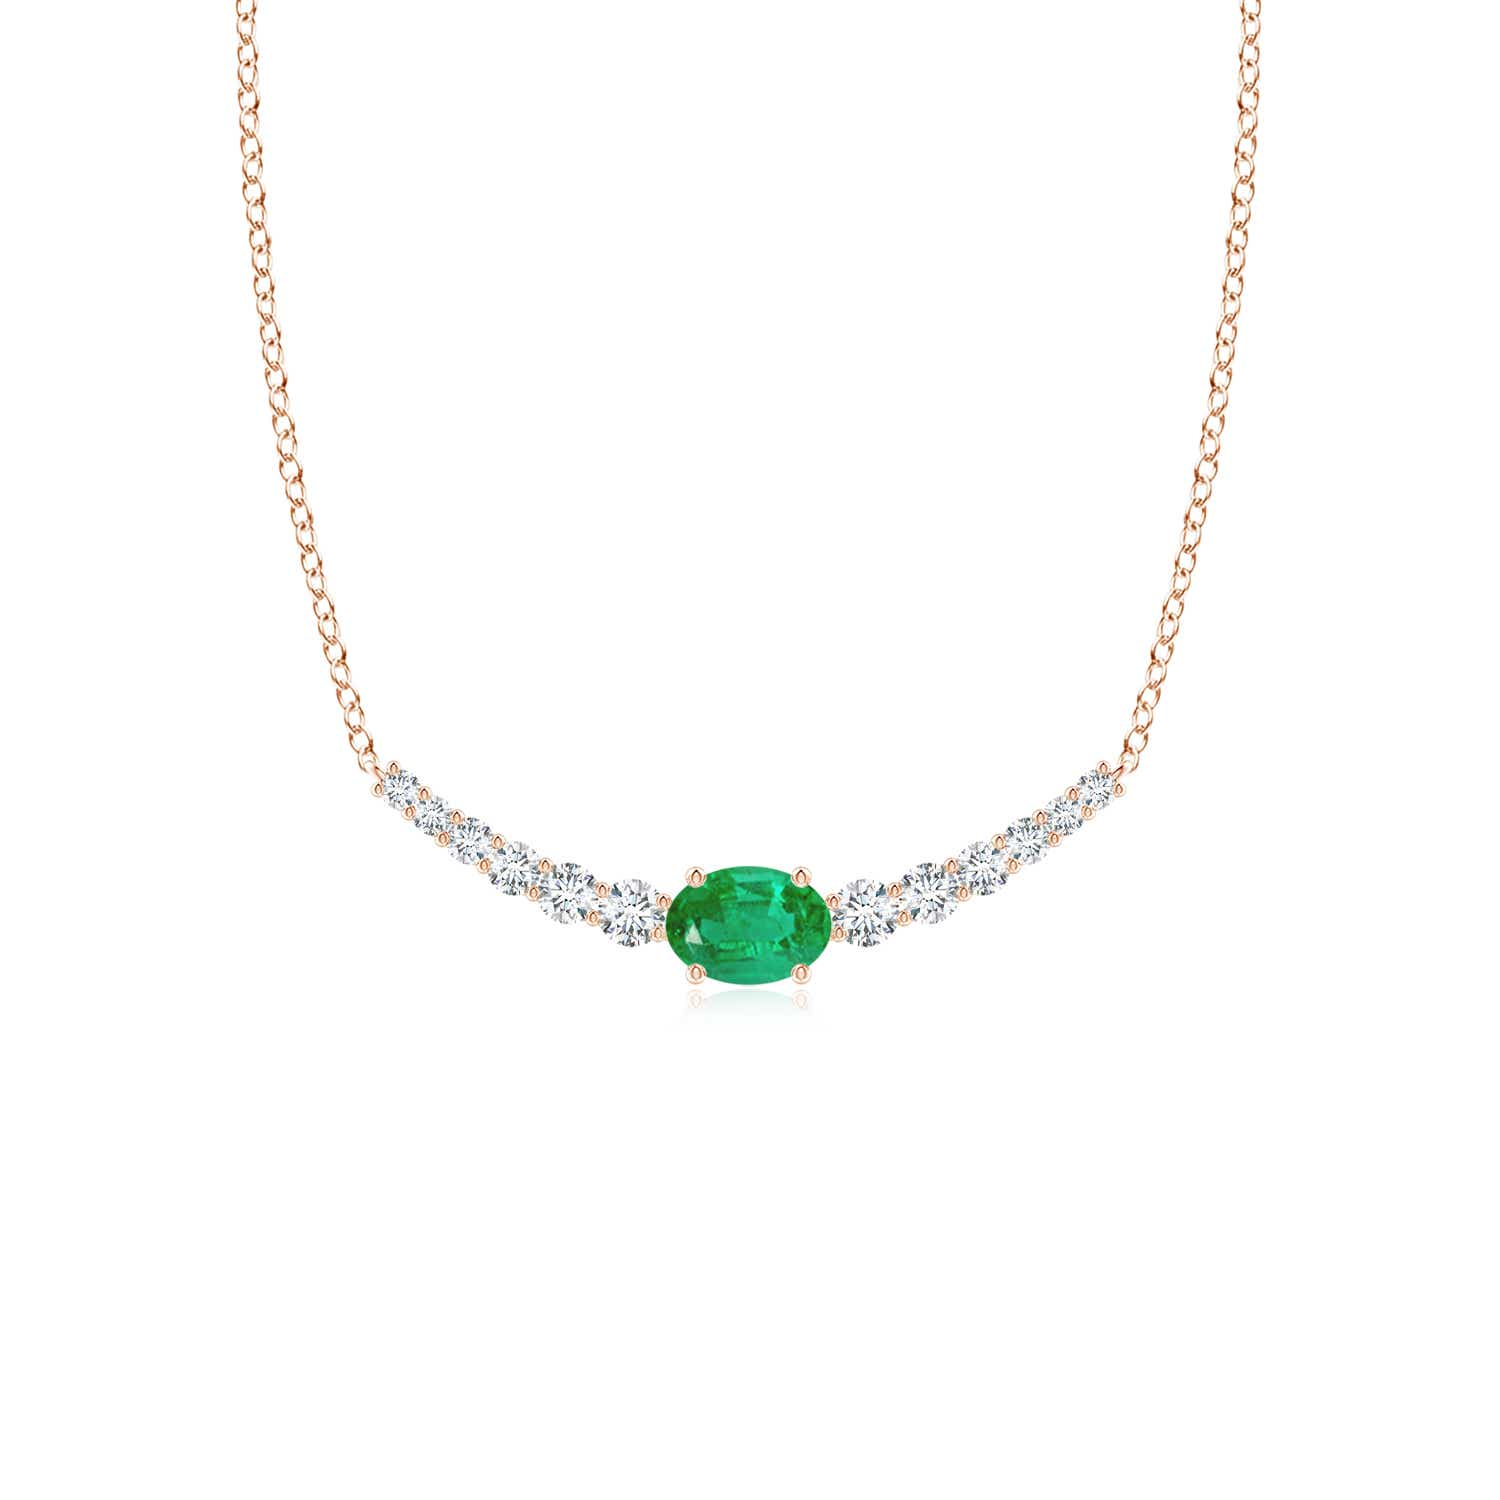 East-West Oval Emerald Curved Bar Necklace with Diamonds